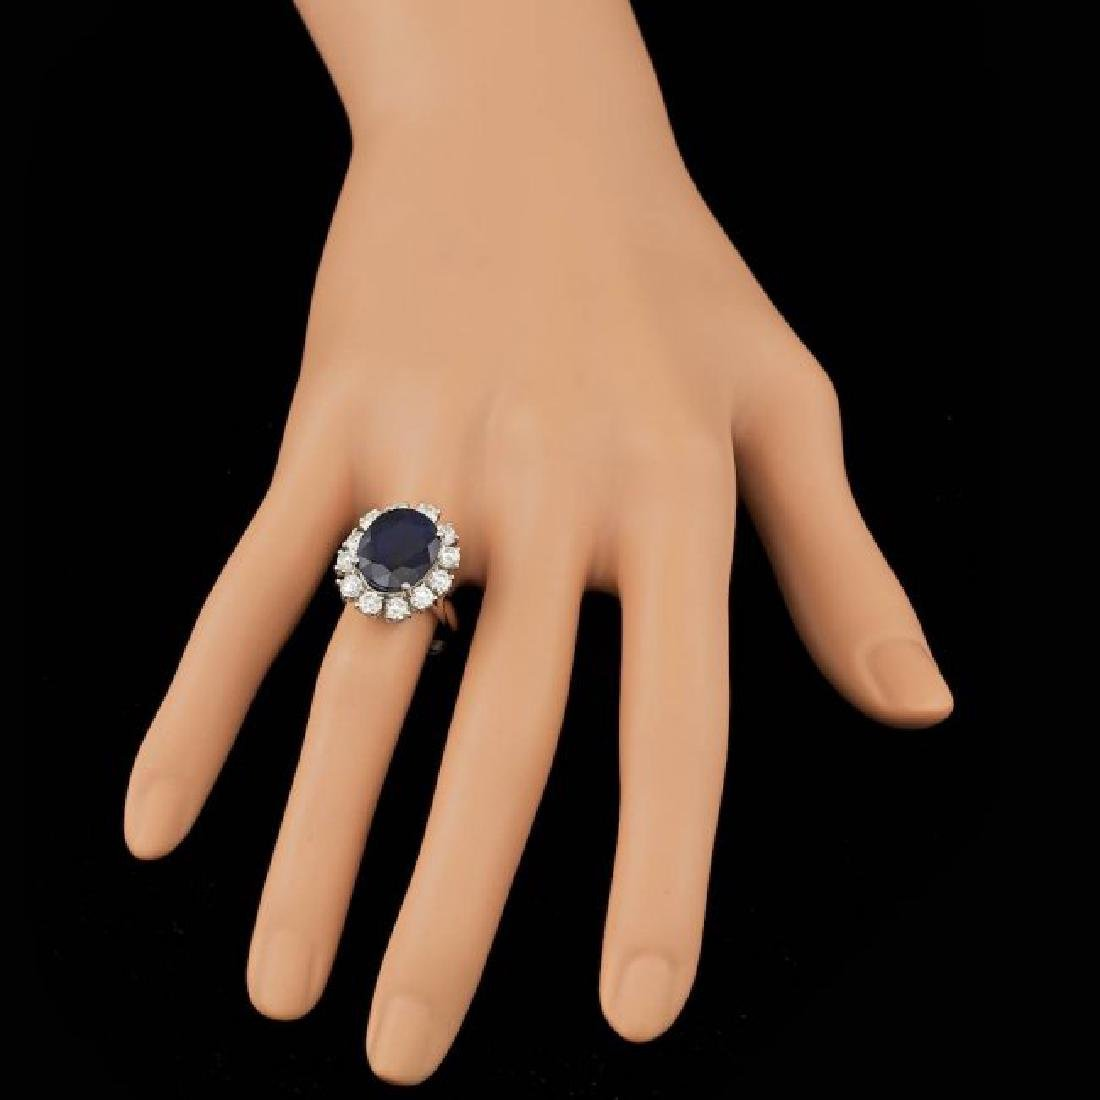 14k Gold 8.00ct Sapphire 1.70ct Diamond Ring - 4